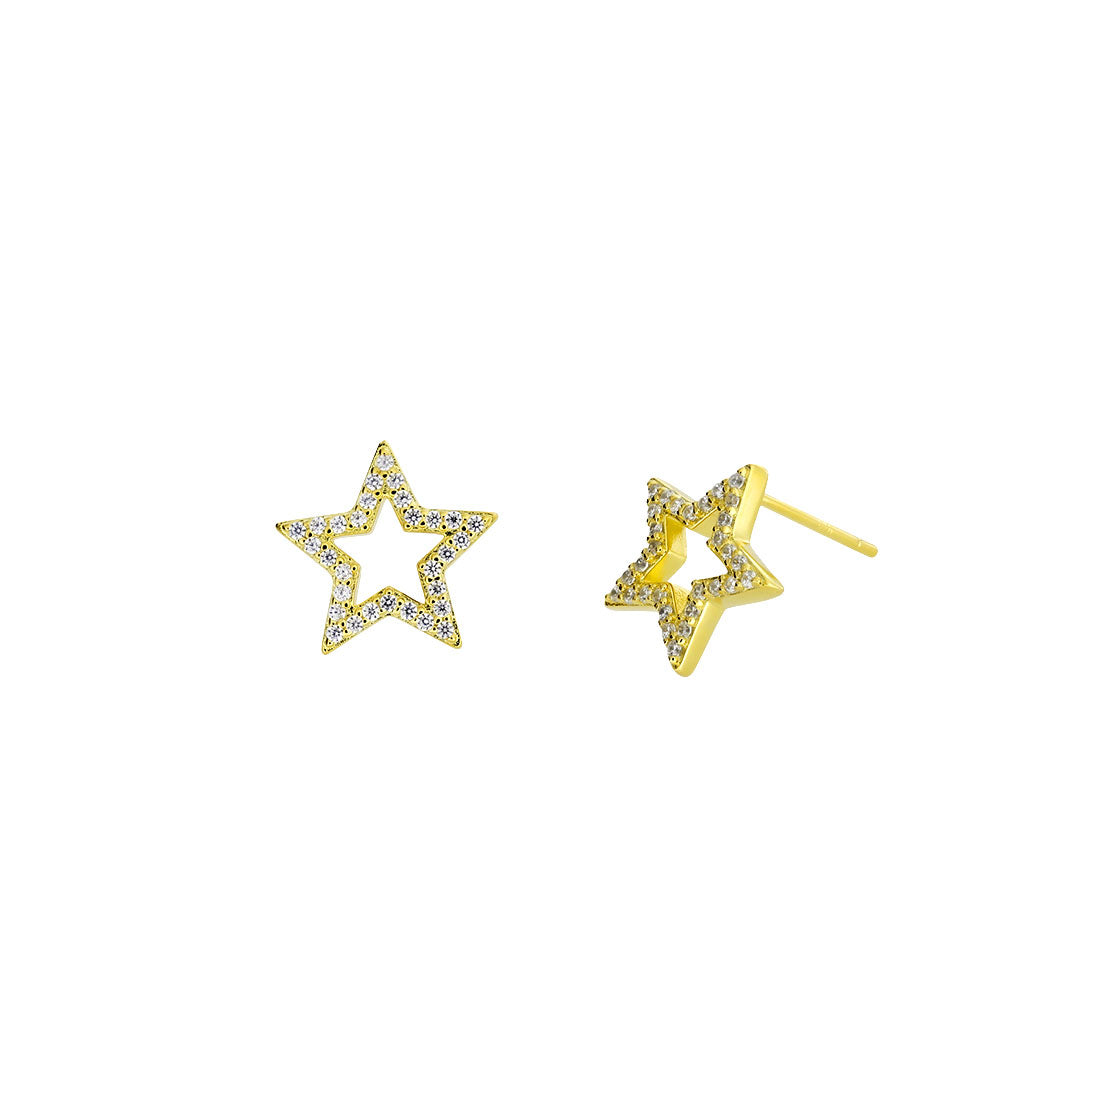 Pavé Open Star Stud Earrings - Gold Vermeil